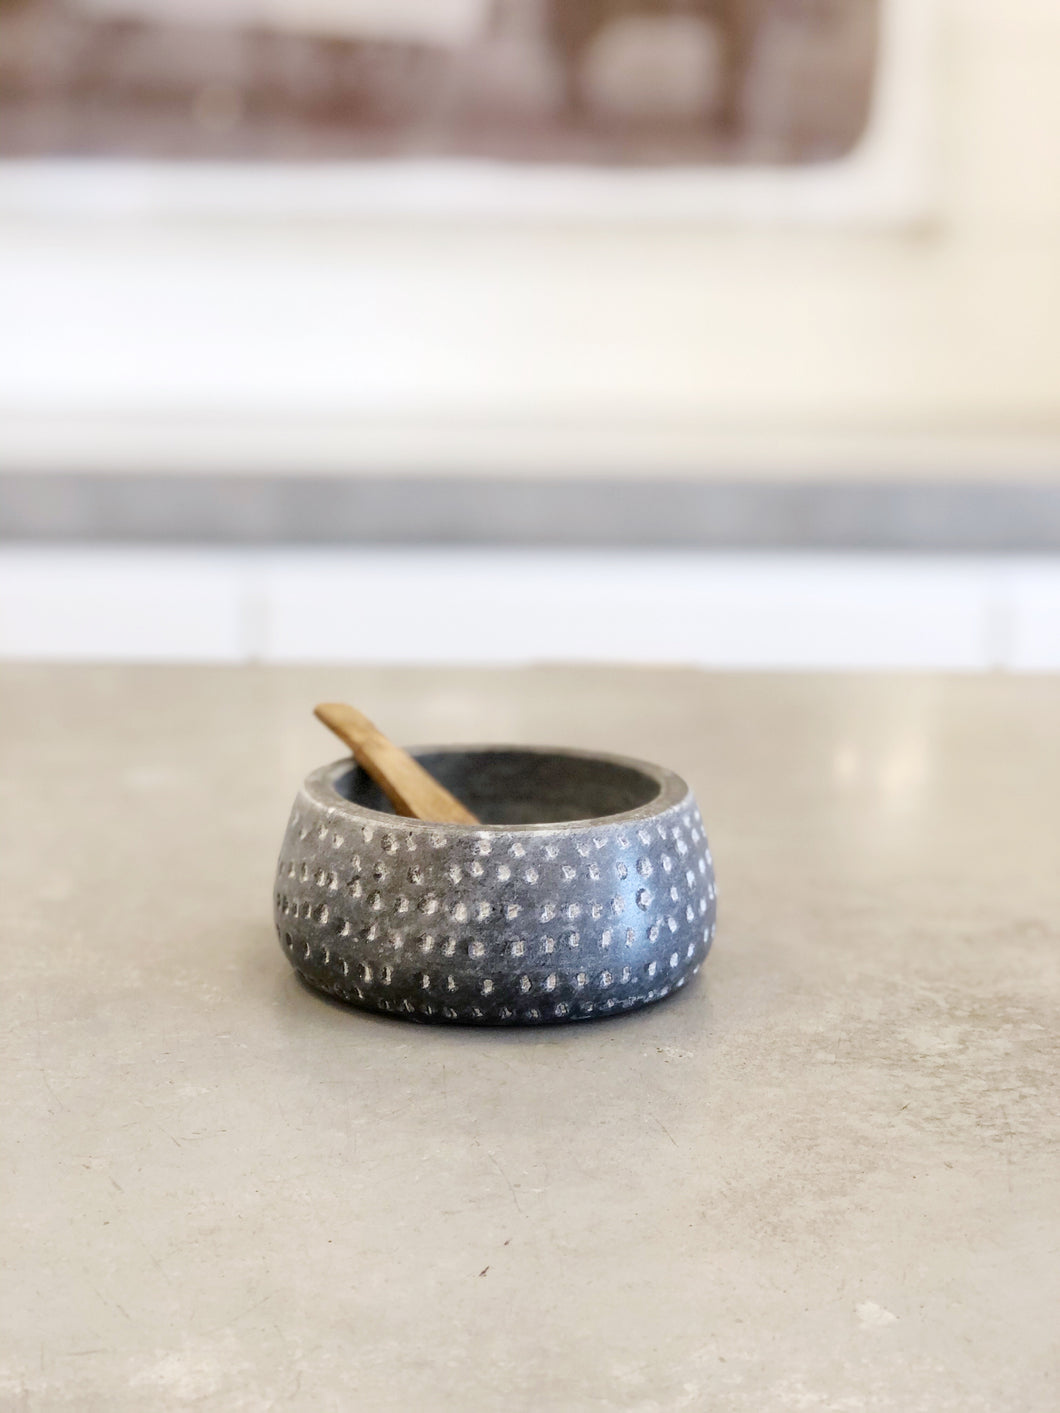 Granite Salt Cellar w/ Wood Spoon